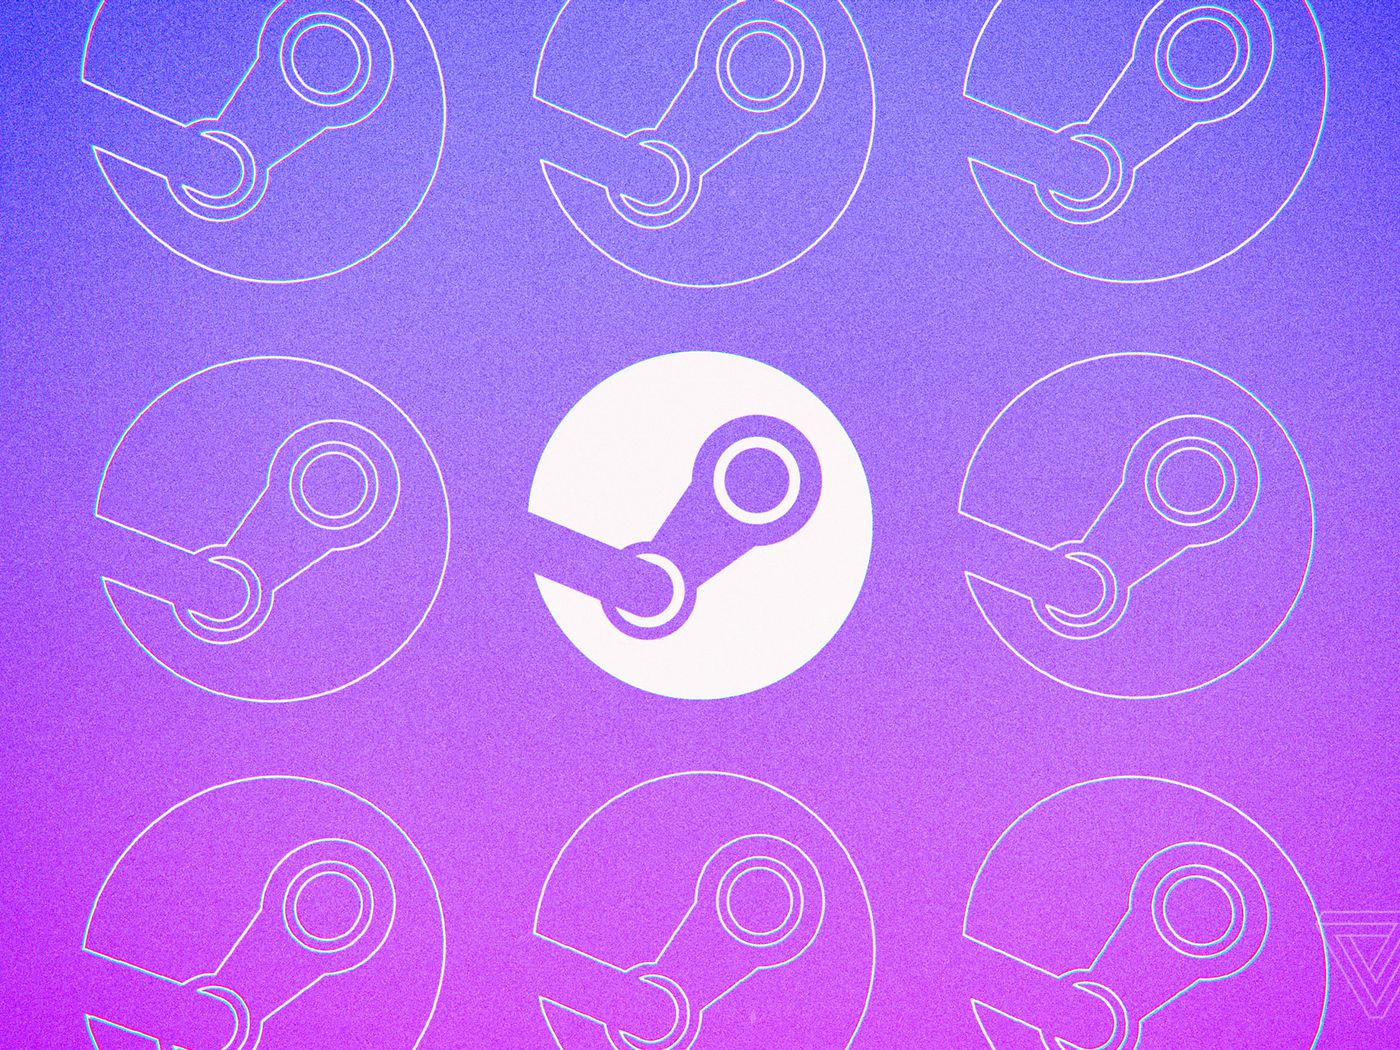 Valve says it will allow 'everything' on Steam as long as it